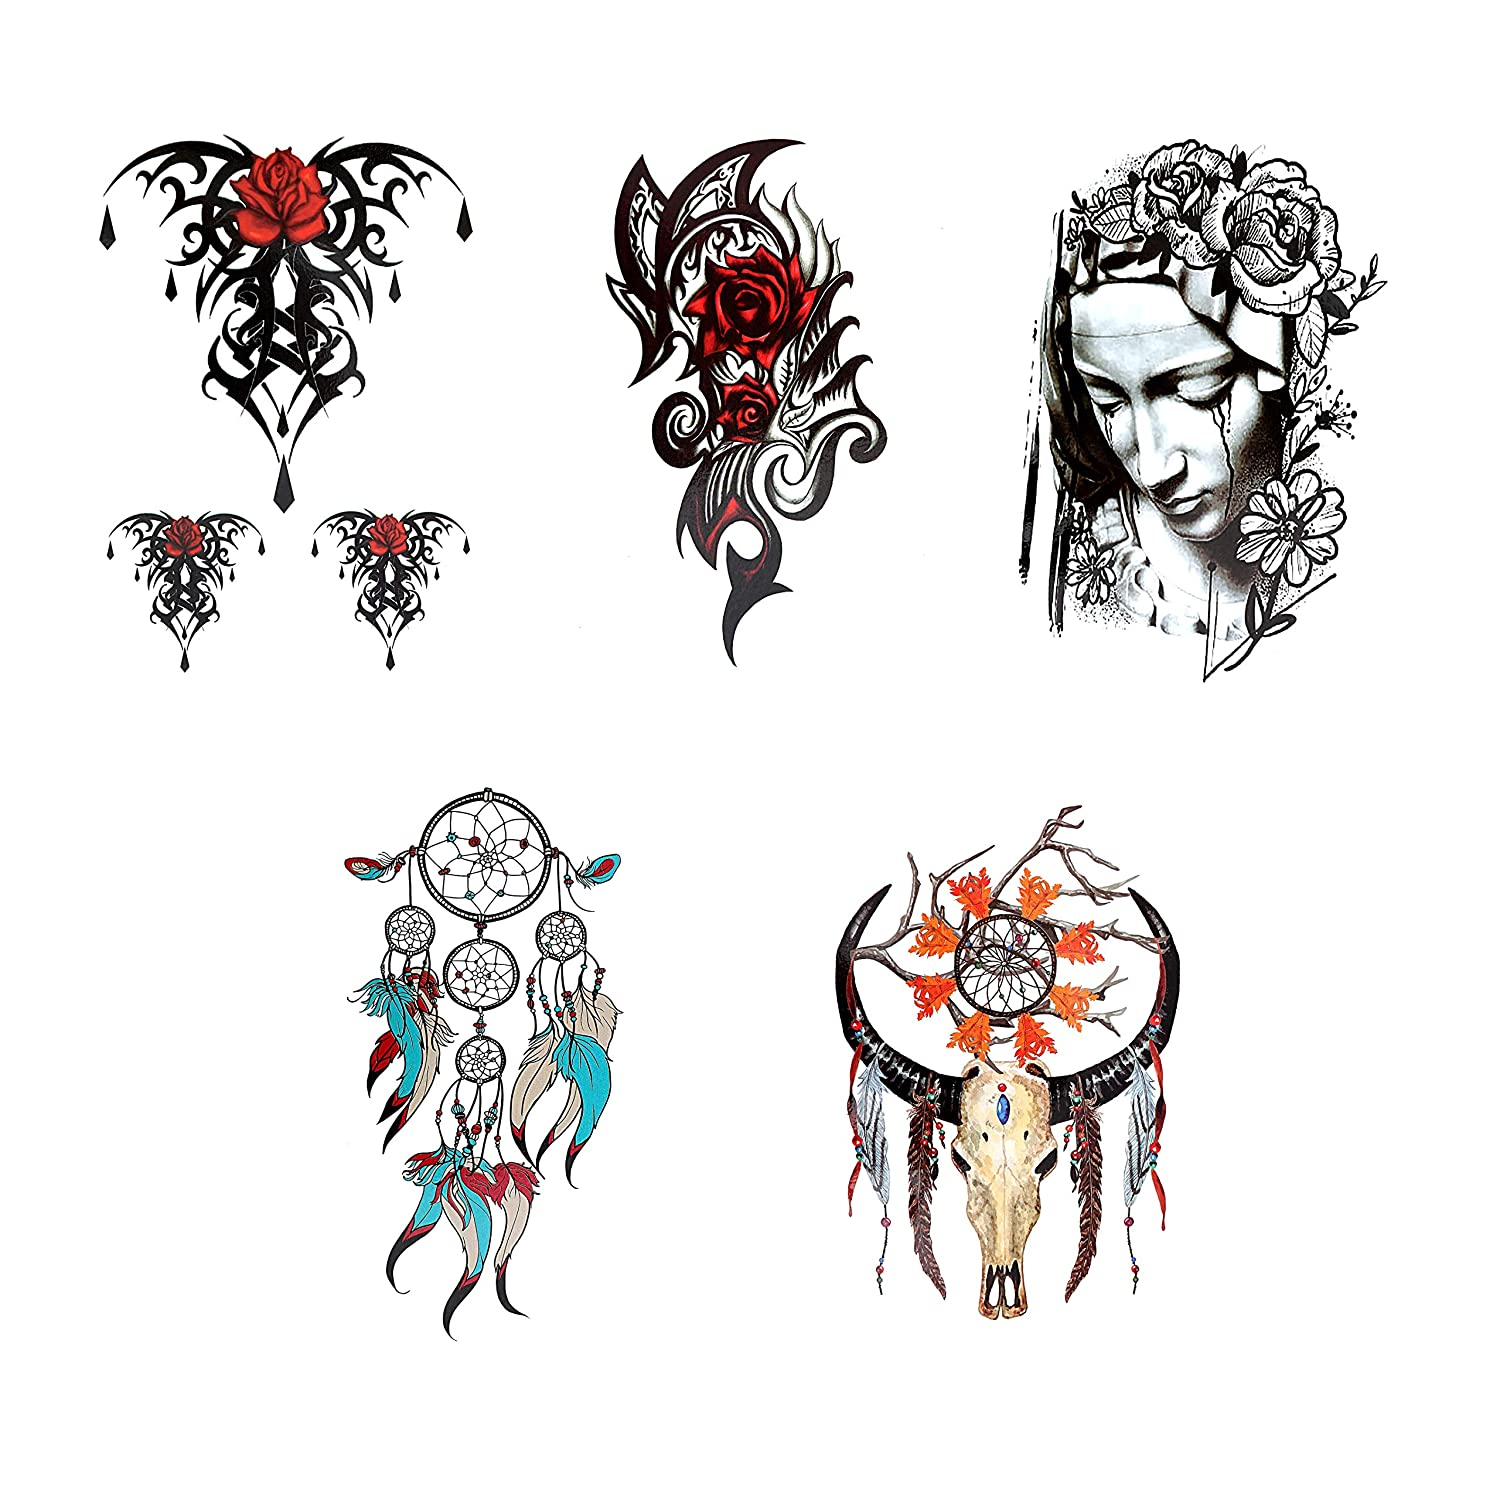 7 Cool Temporary Tattoos Assorted Styles and Designs - Dreamcatchers, Crying Woman, and Floral - For Adults and Teens Tattoos for Arms Legs Shoulder or Back